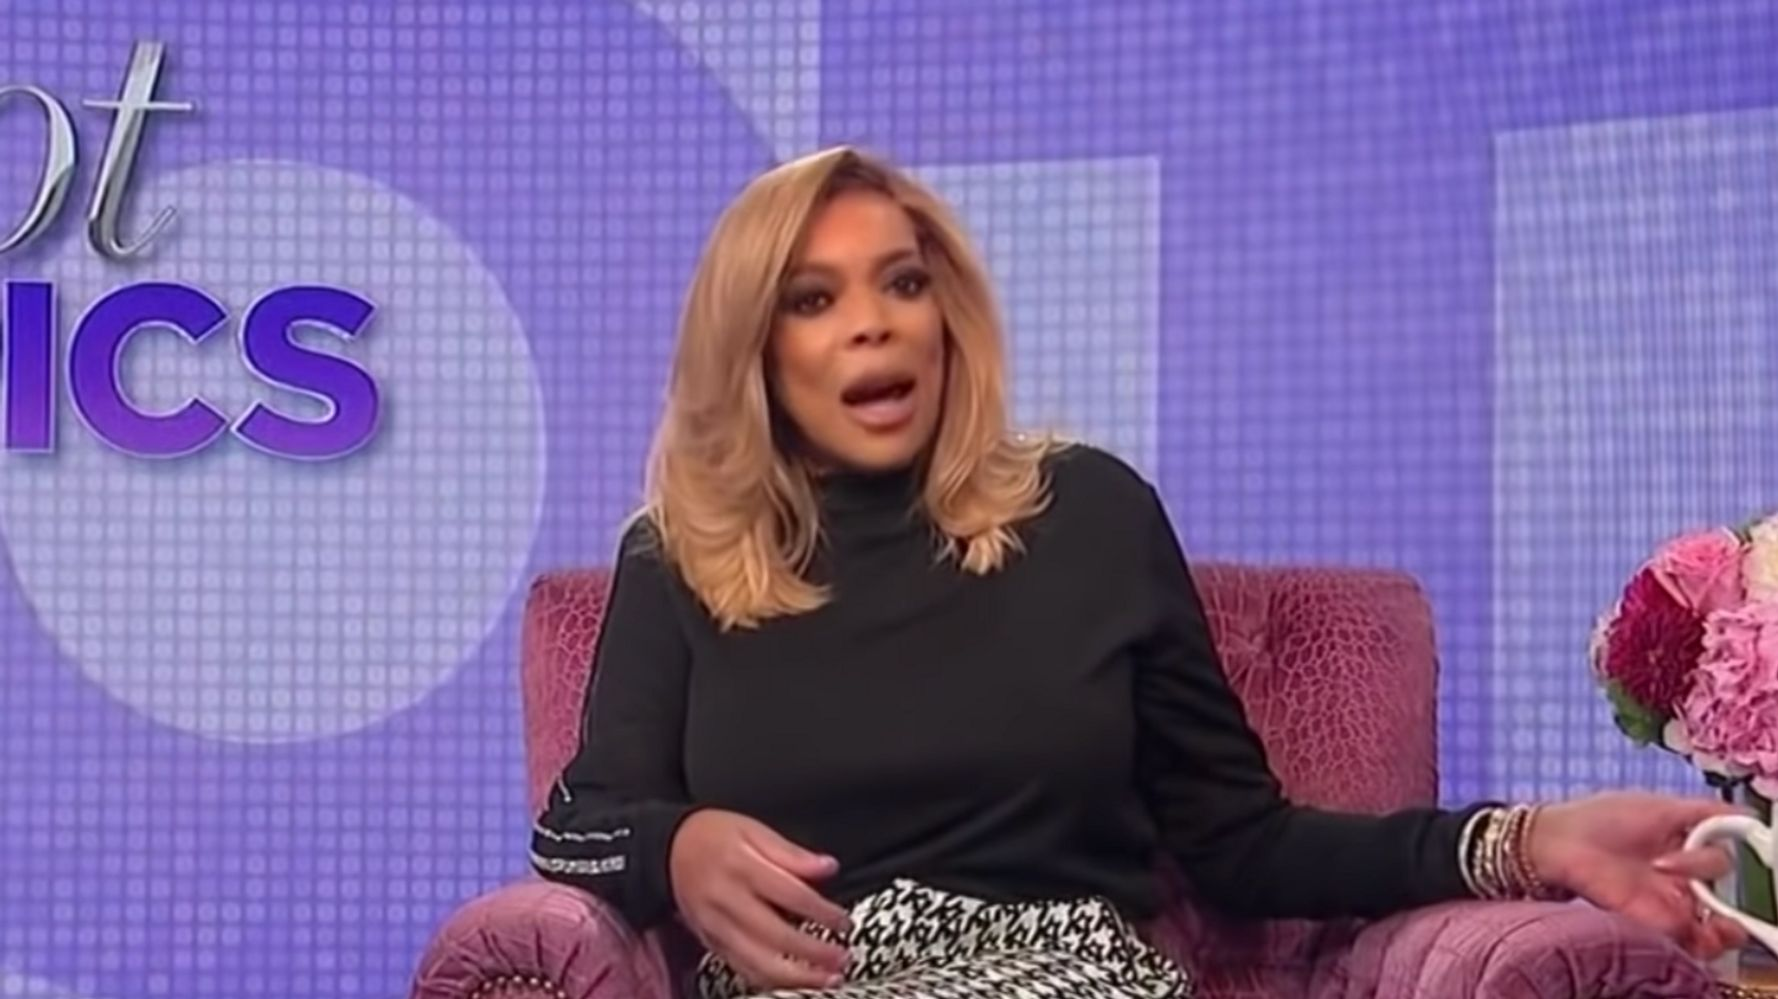 Wendy Williams Responds To Fans' Concerns About Behavior: 'I'm Not Perfect'